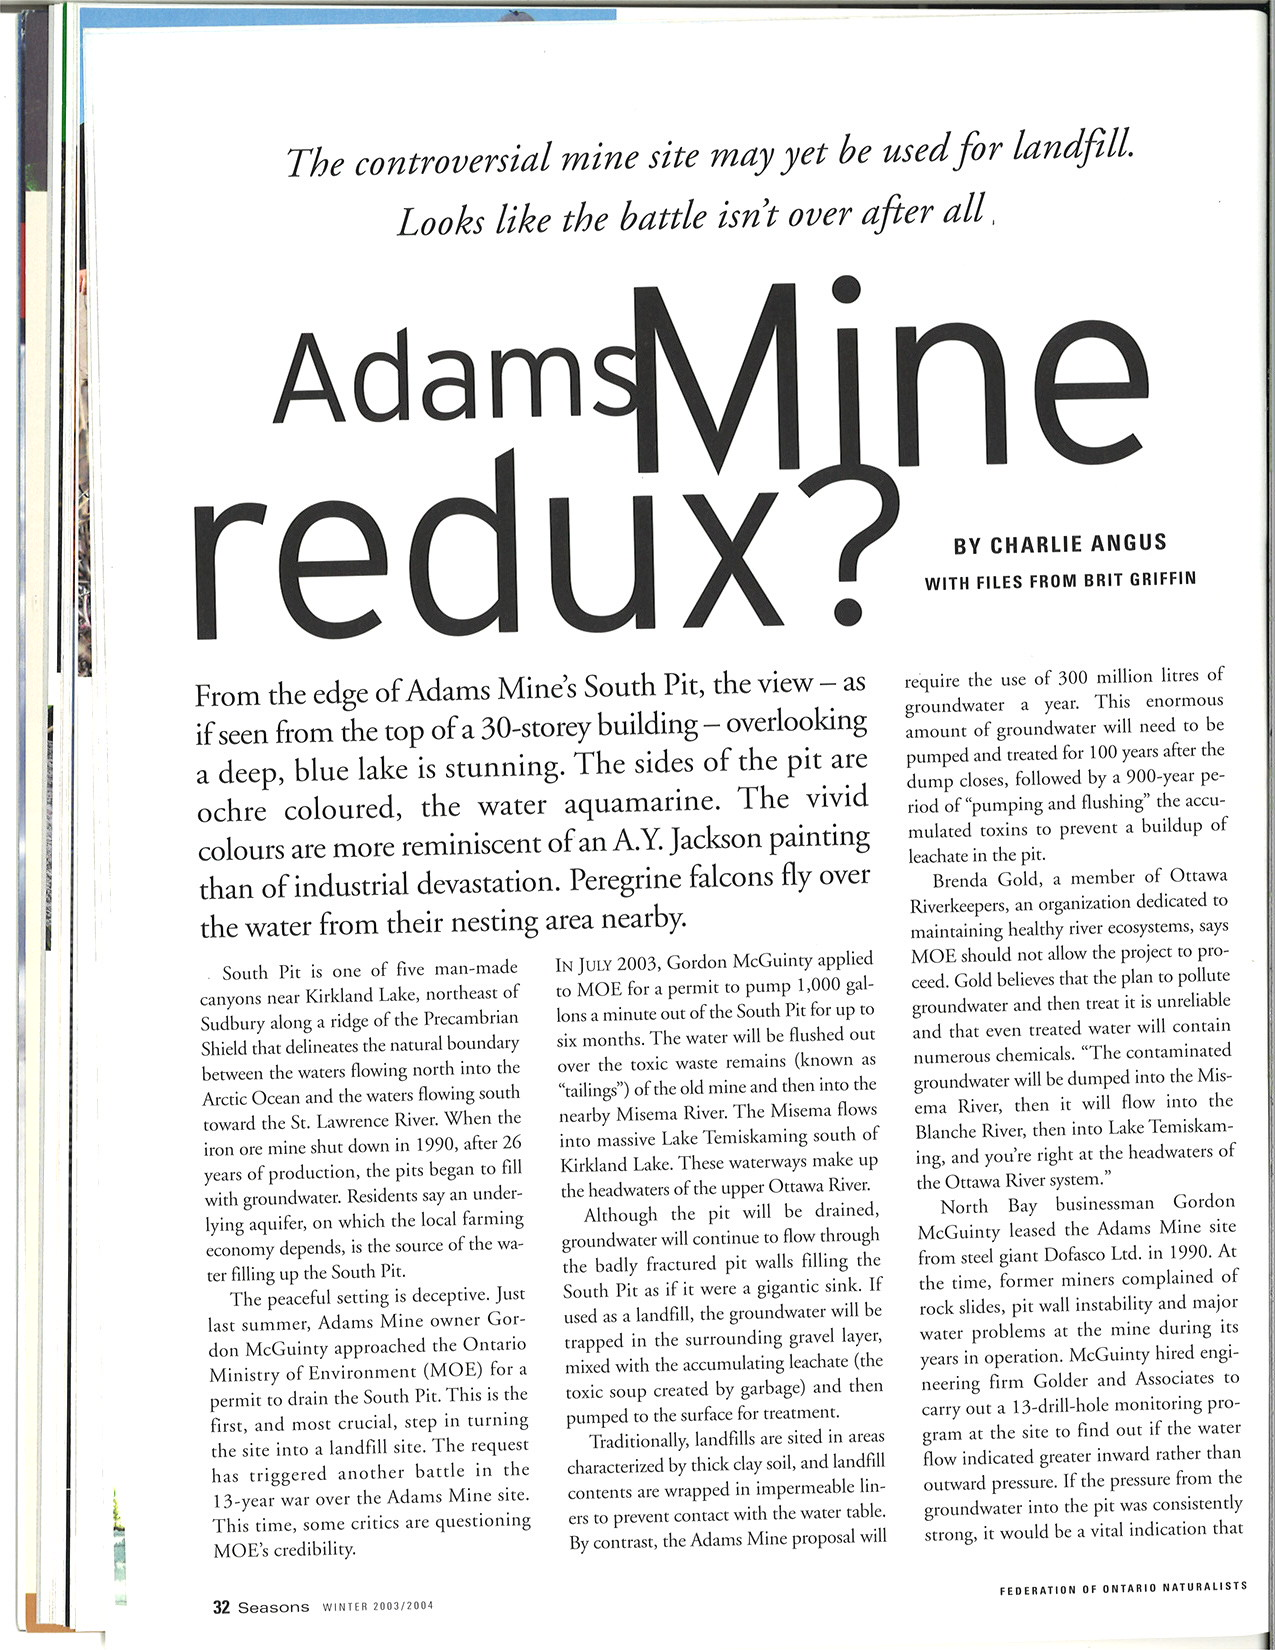 seasons_2003_v43_i4_f_adams_mine_redux_32